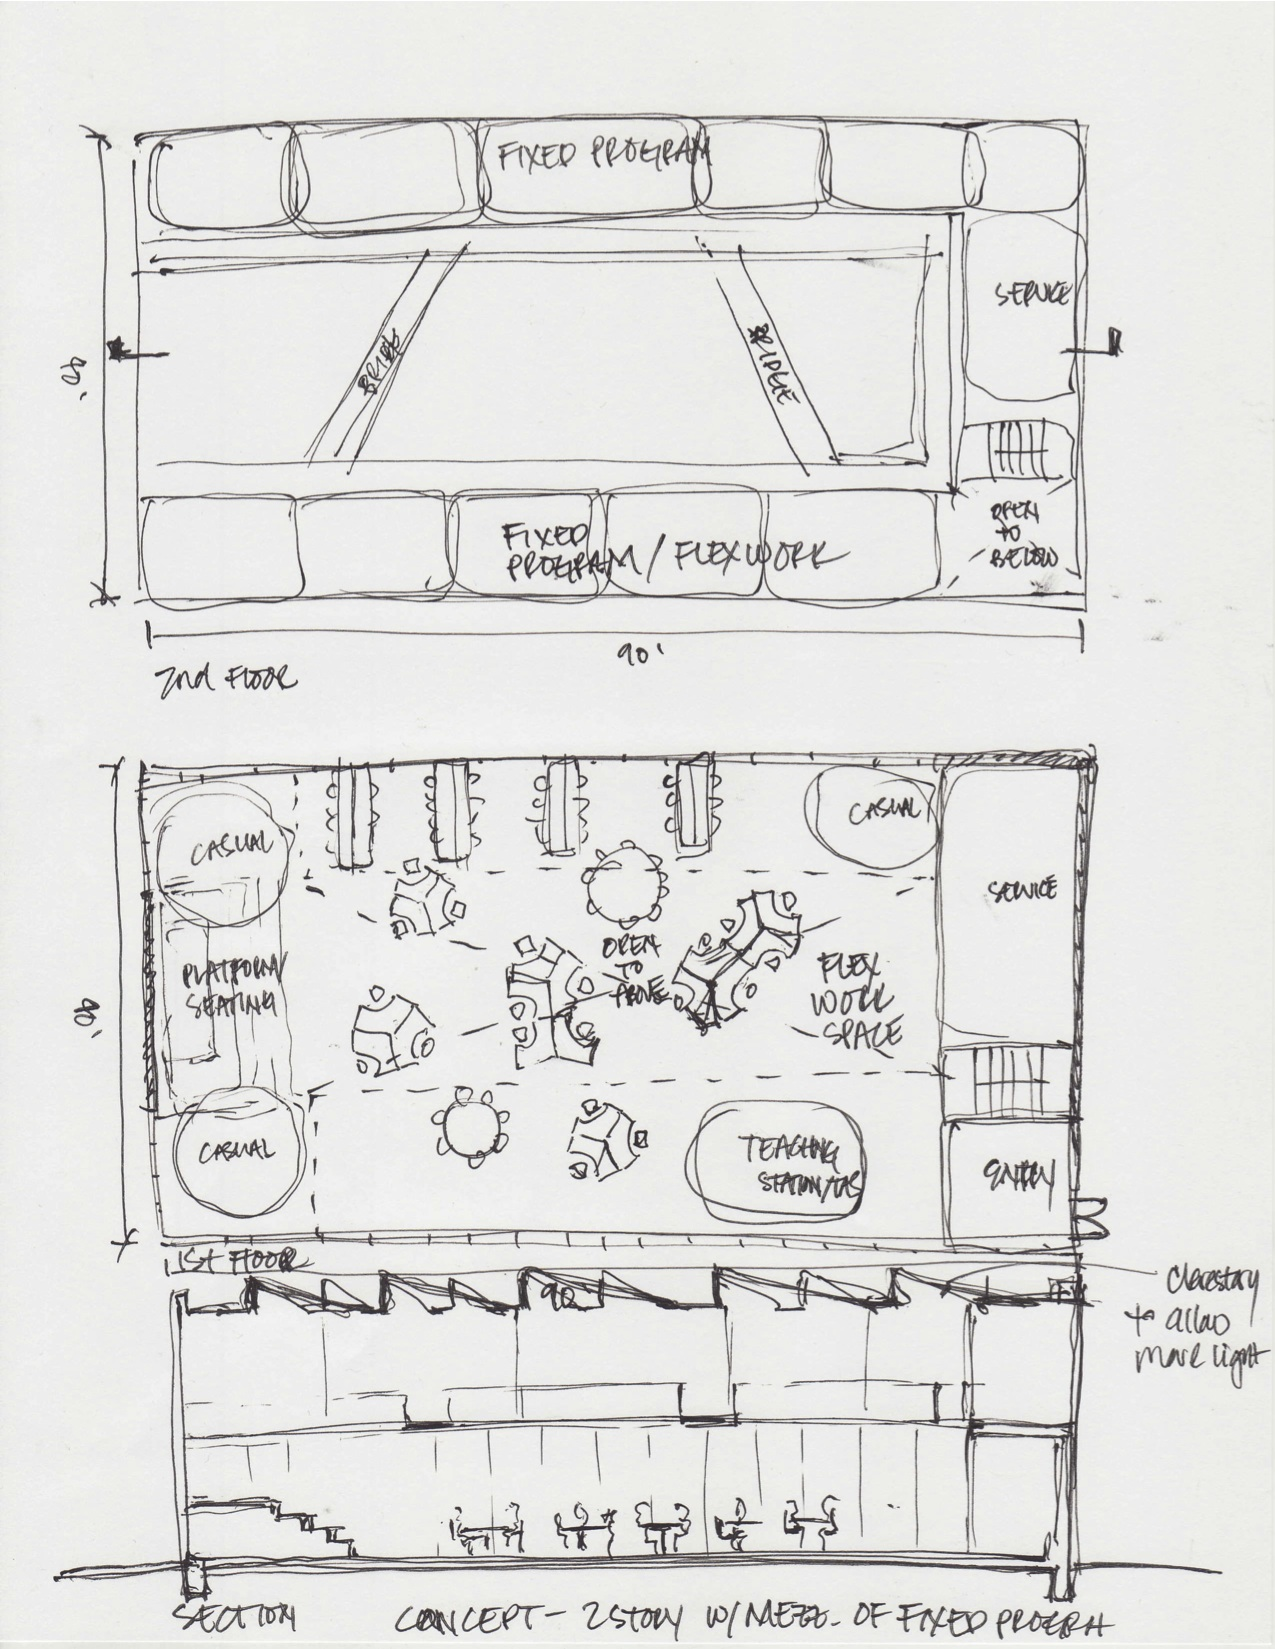 A draft program for a two-story Medical Studio as a precision learning environment. It is a space ready for digitally enhanced collaborative learning and utilizes low cost and recyclable materials. It also provides open spaces informal interactions, smaller rooms for both lo-fi and higher fidelity simulation as well as variable seating, lighting, and projection technology;all to power the variety of use cases that will propel modern education. Erica Nobori, Min | Day Architects.